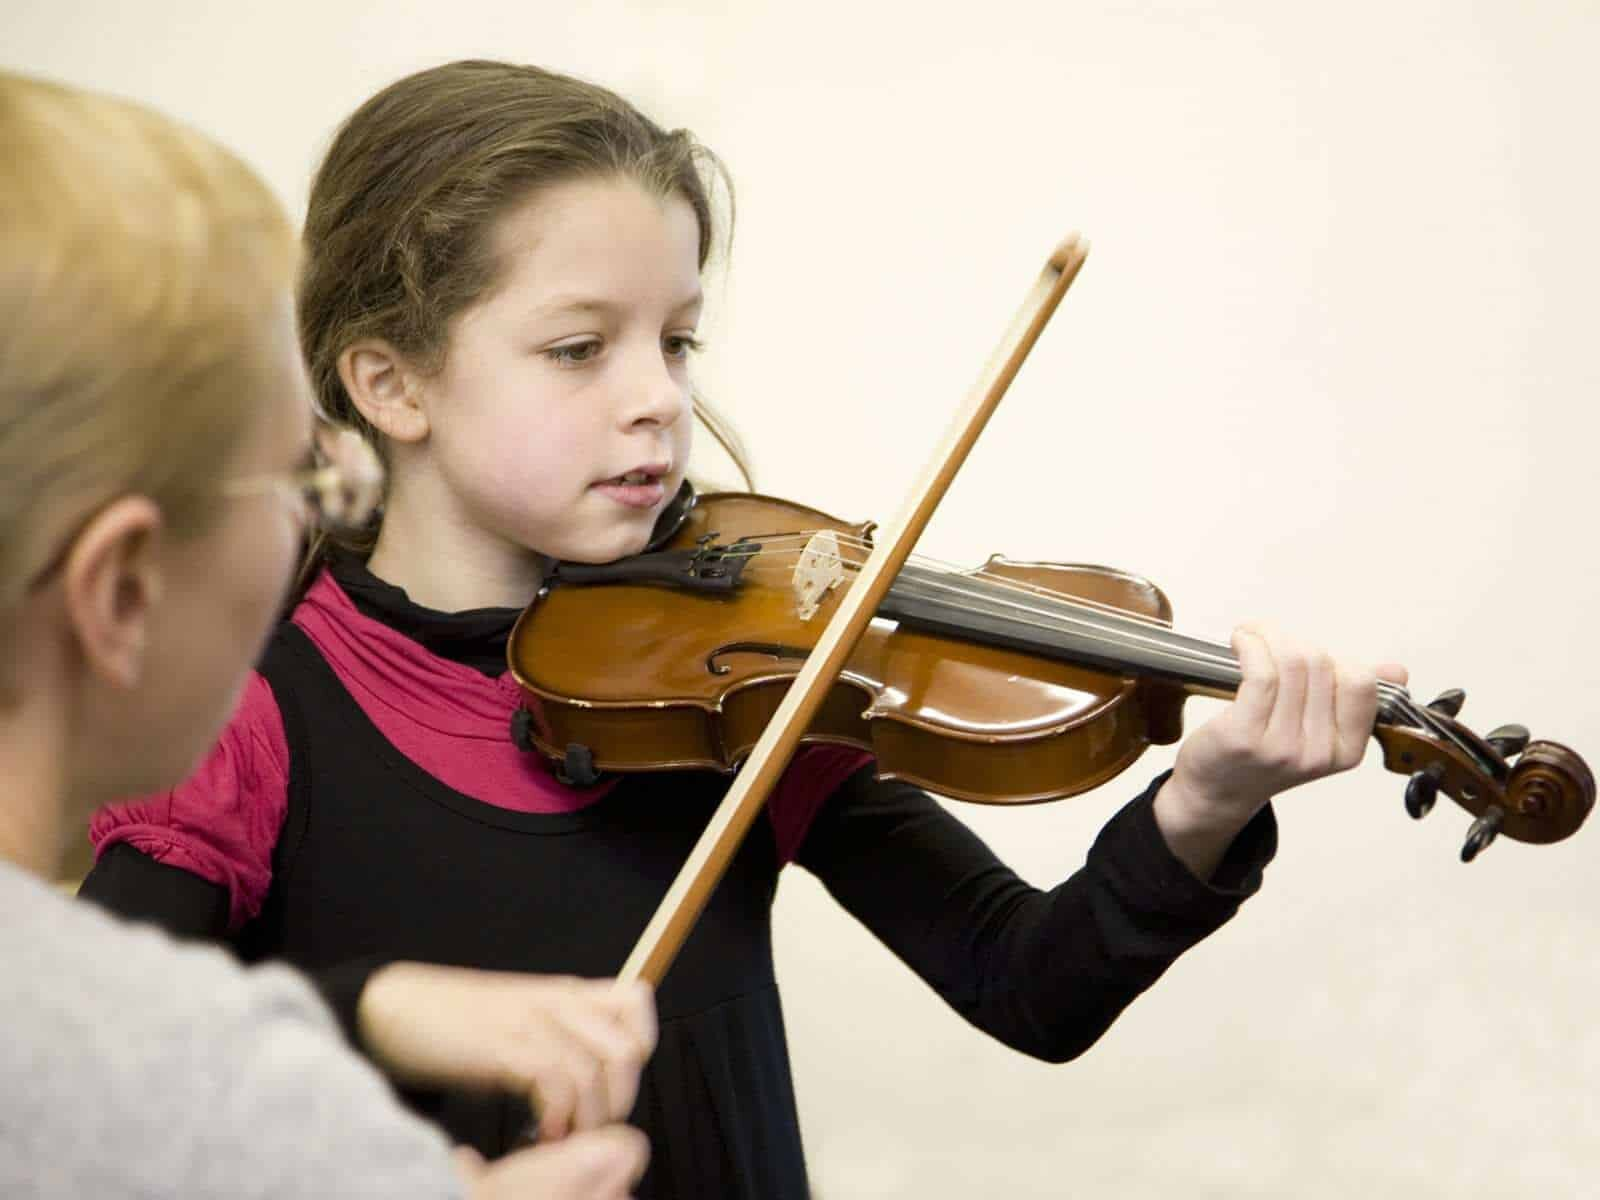 Introducing Violin for Children